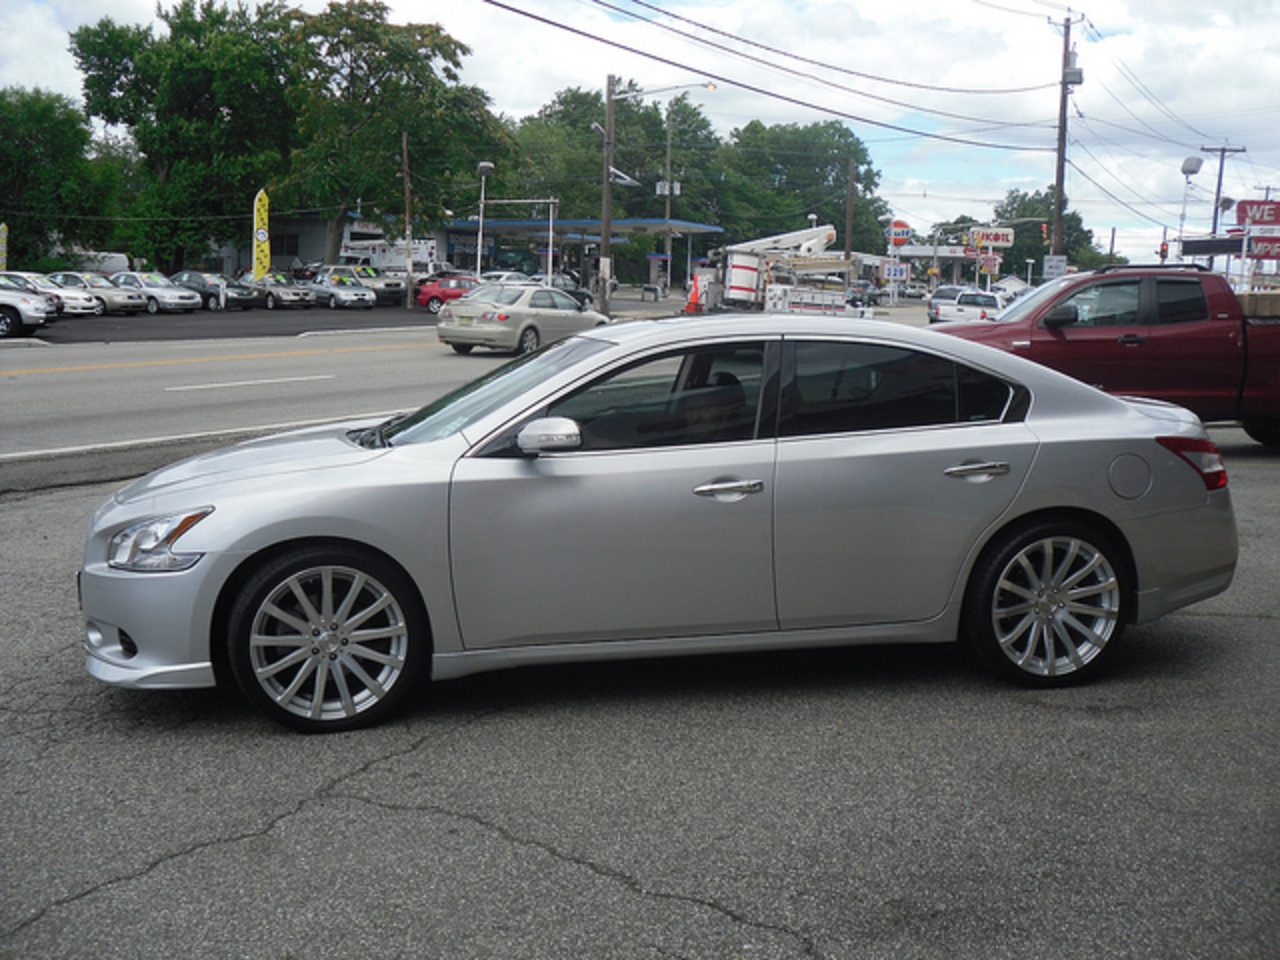 rayco 2 nj nissan maxima mrr hr9 wheels concave | Flickr - Photo ...